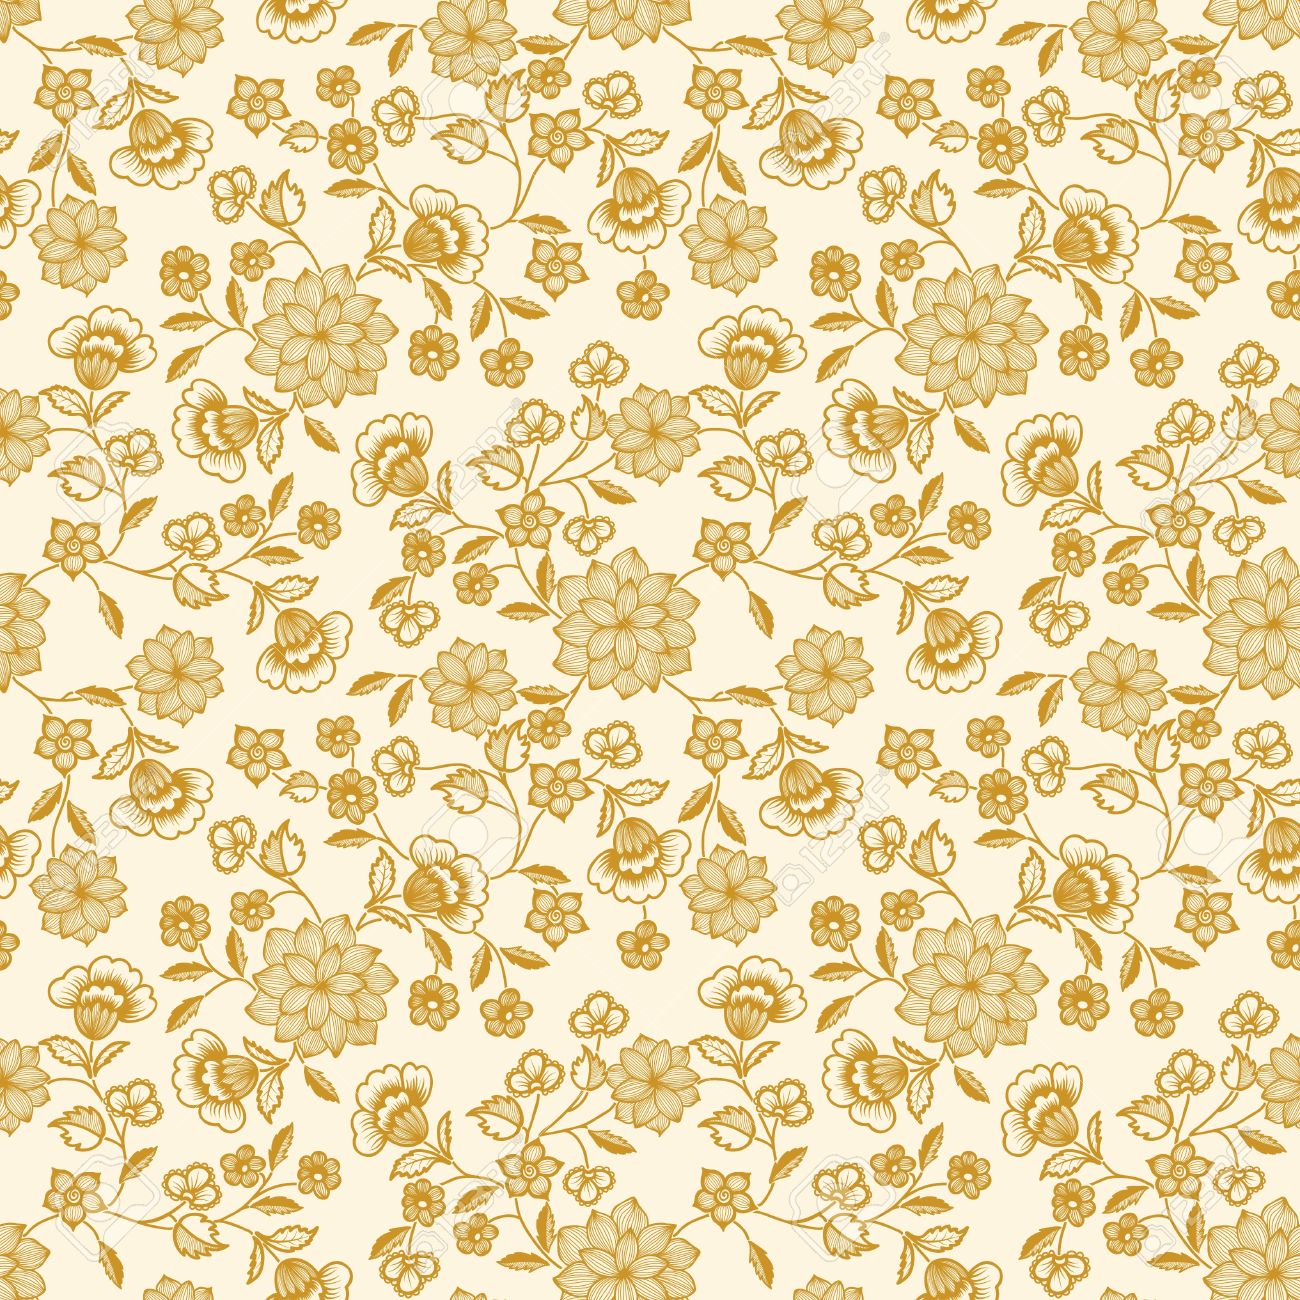 vector flower pattern background royalty free cliparts vectors and rh 123rf com vector flower pattern free vector flower pattern free download